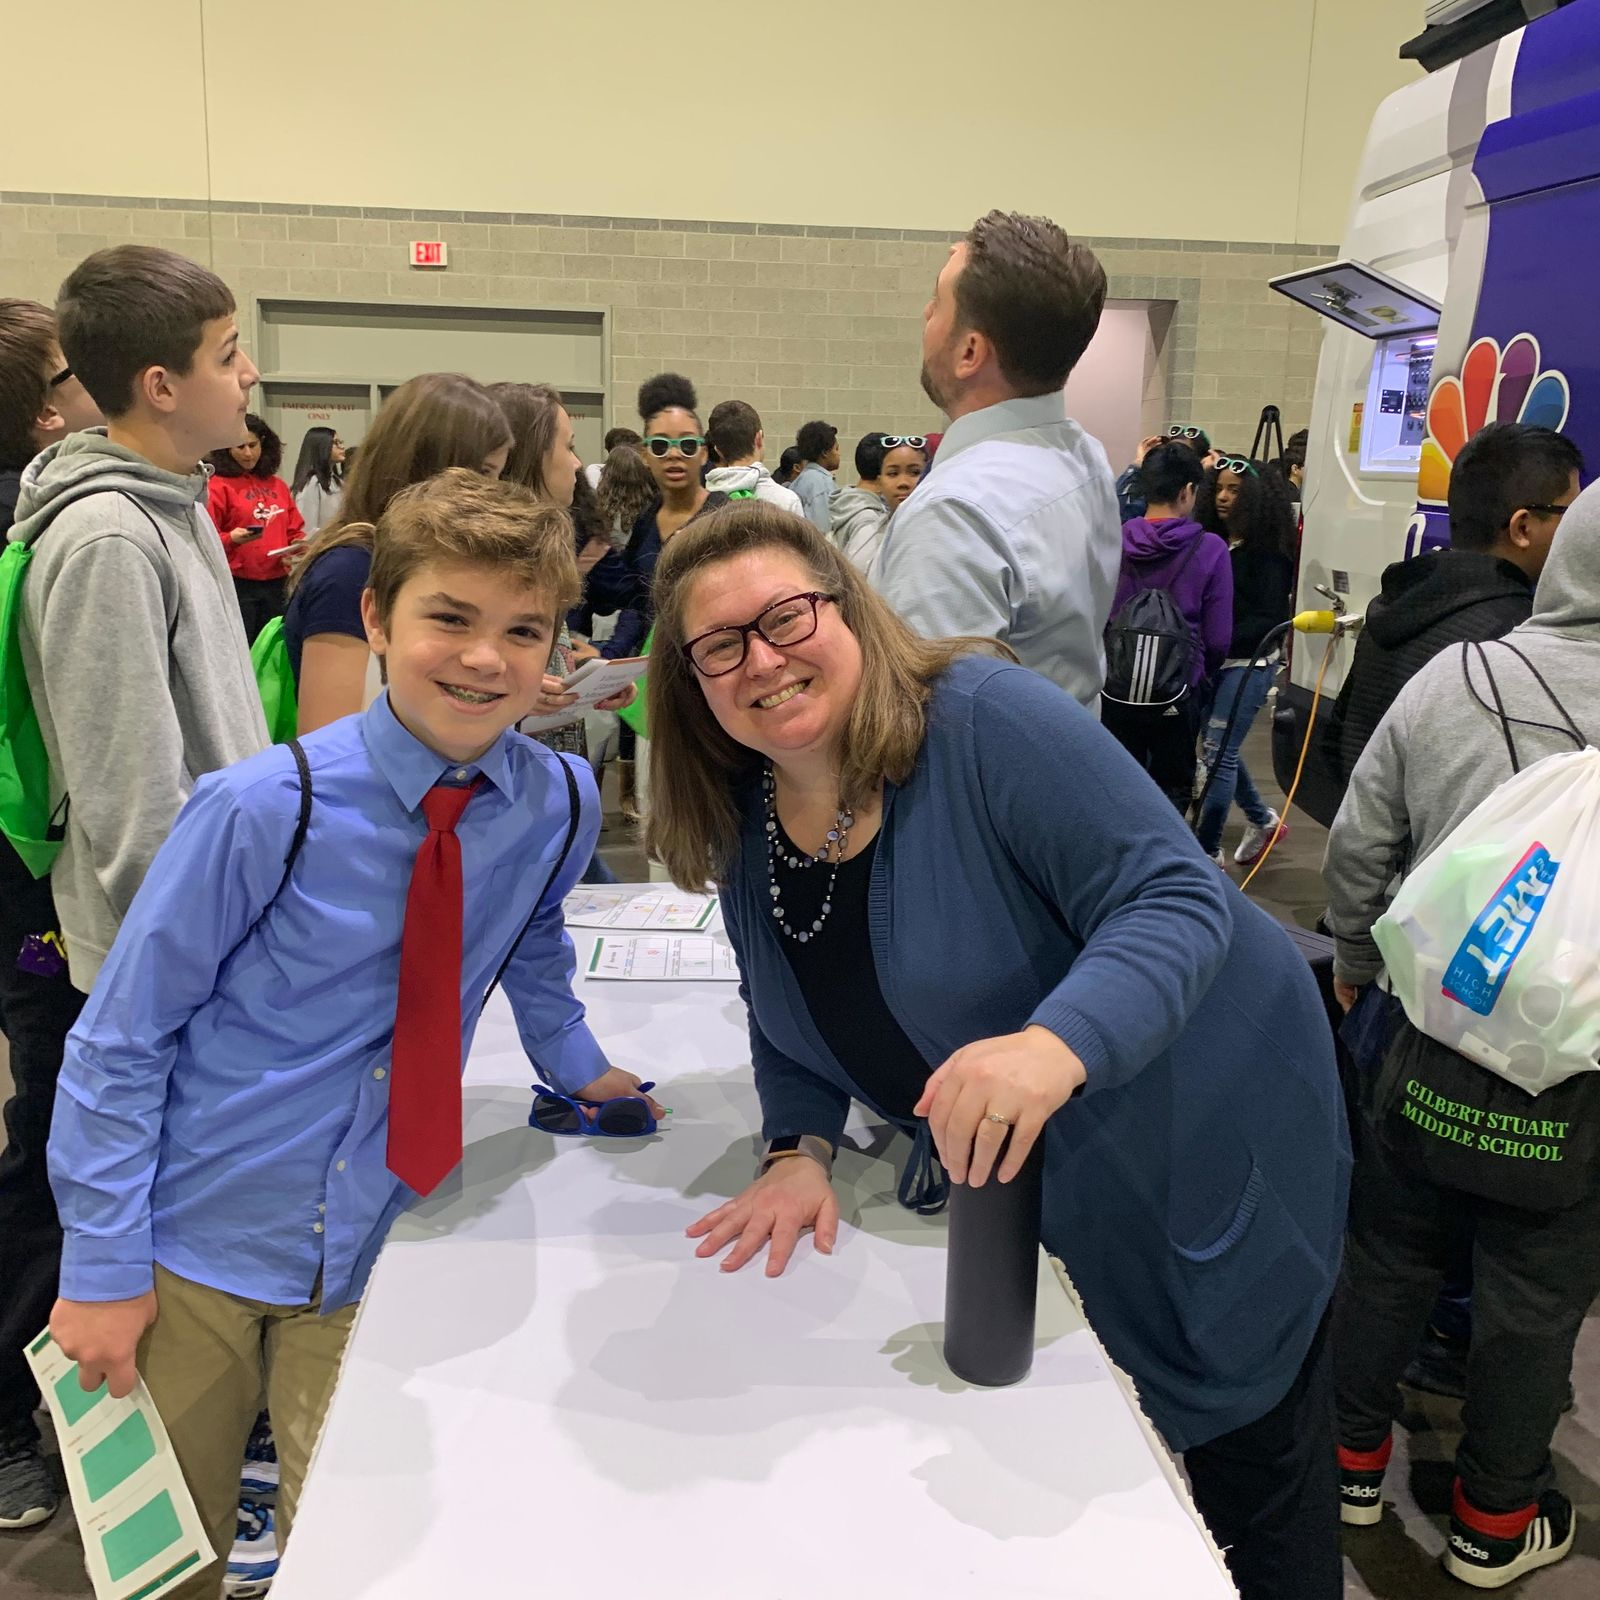 NBC 10 News meteorologist Kelly Bates was there Wednesday, Nov. 20, 2019, showing children how she forecasts the weather. (WJAR)